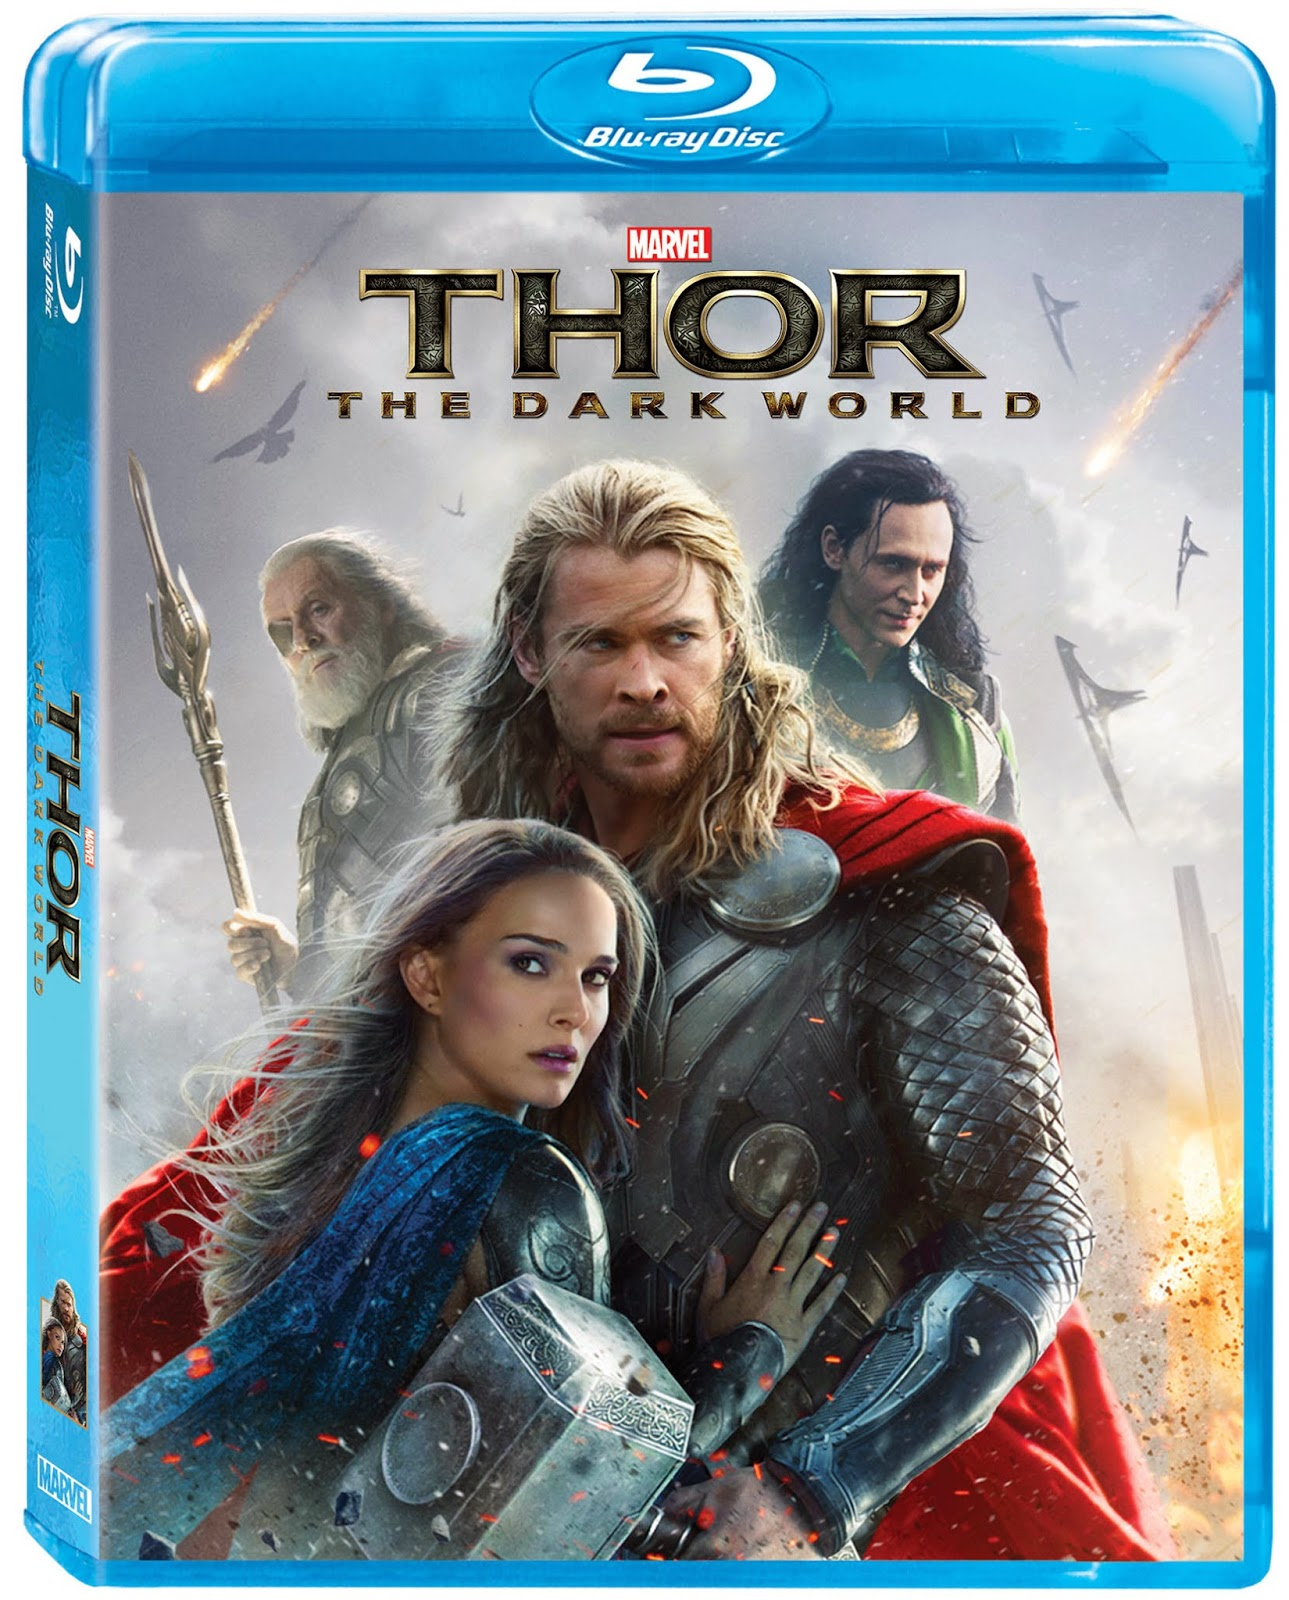 Download Thor: The Dark World BluRay 720p + Subtitle Indonesia